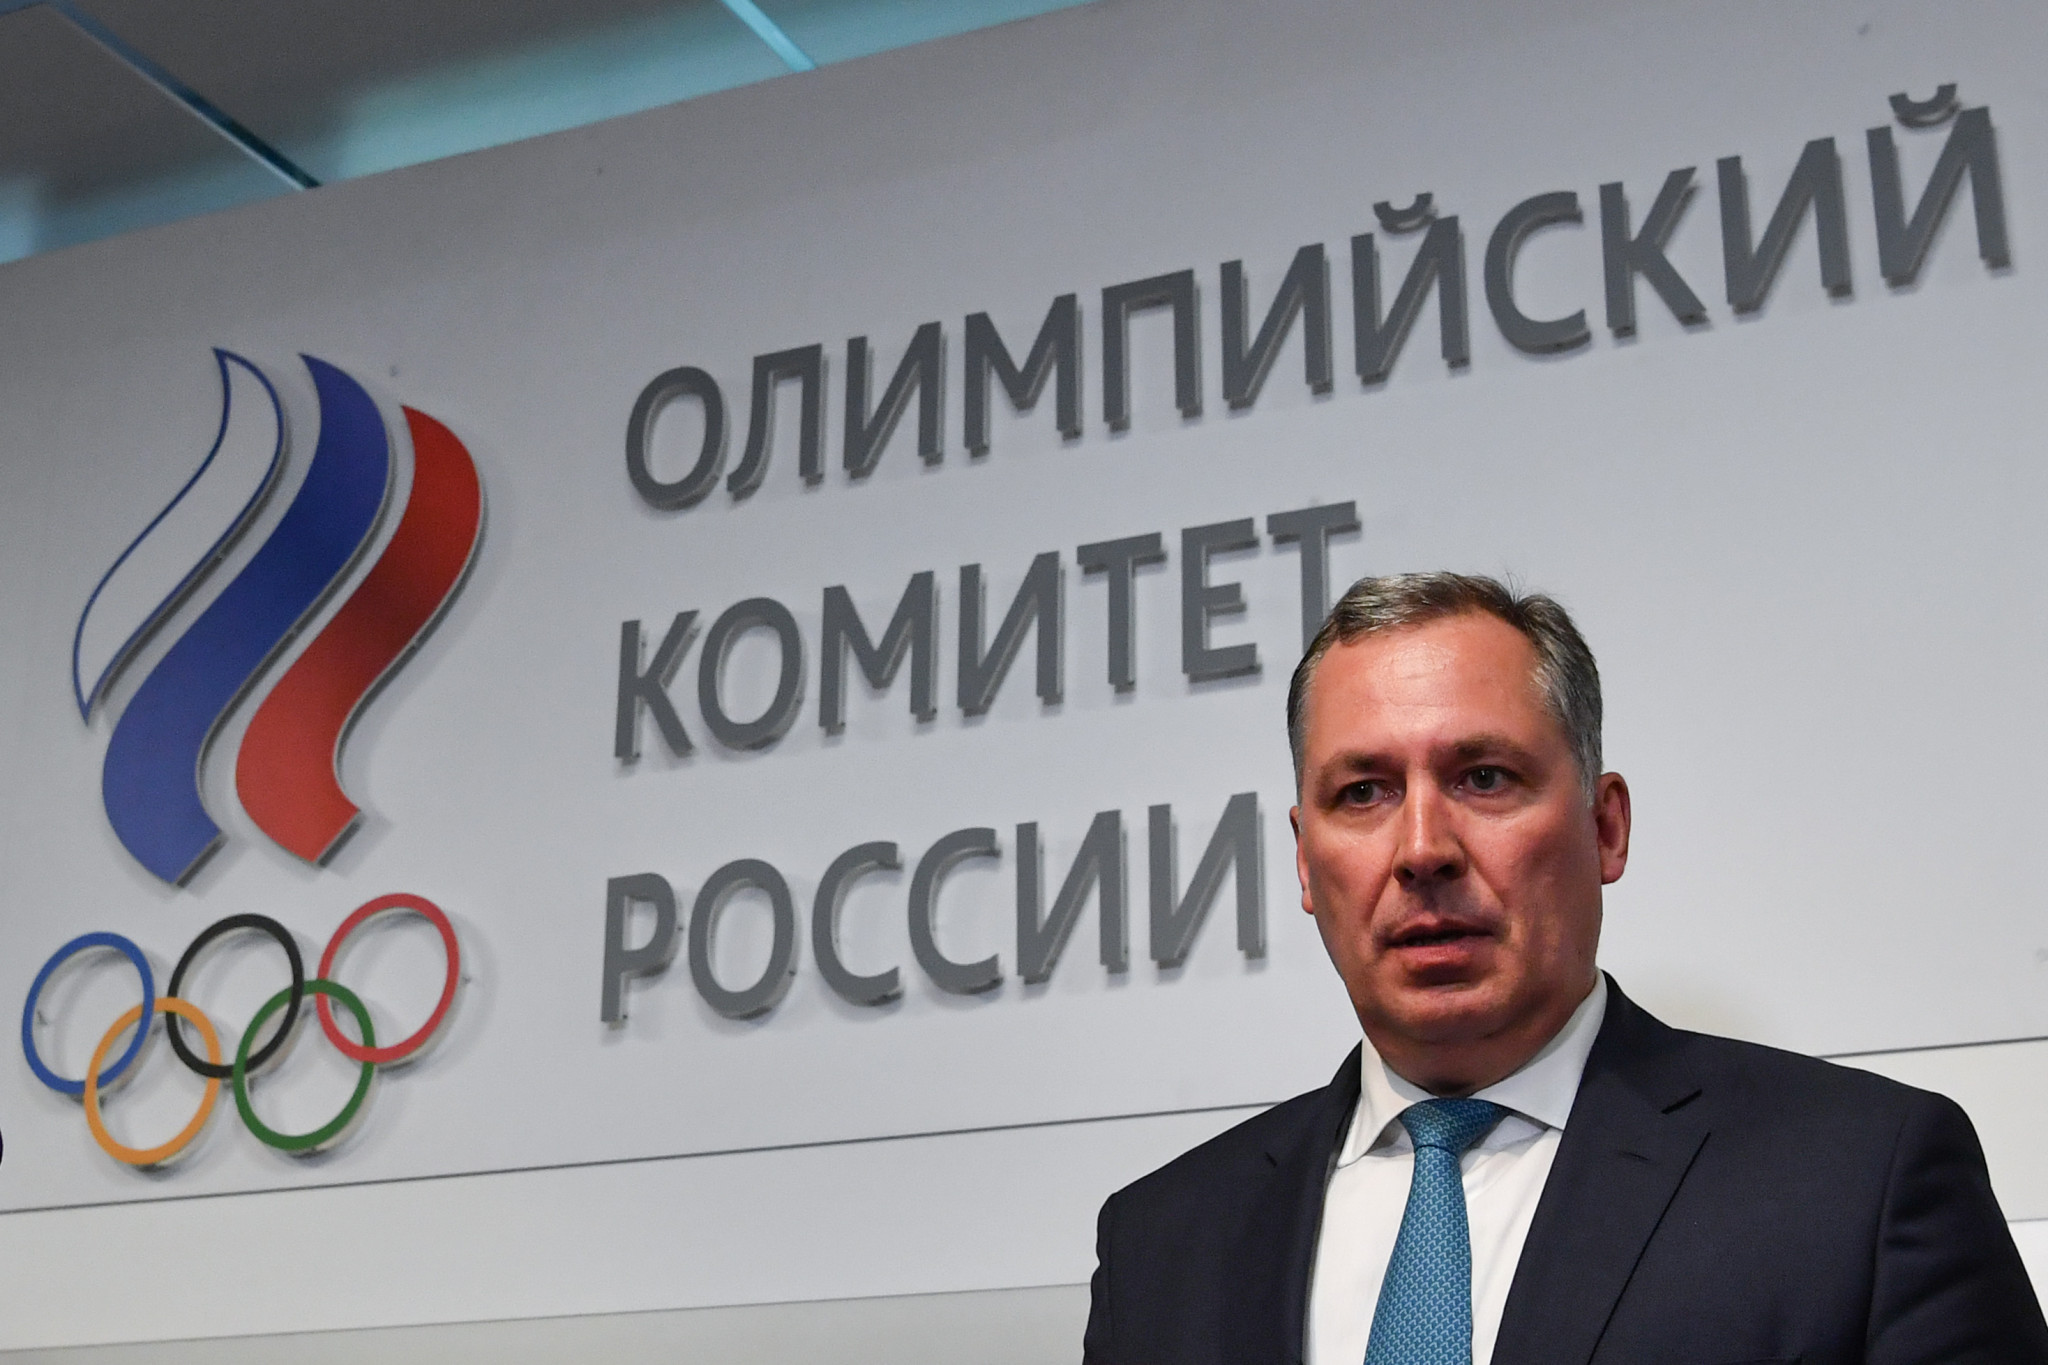 IOC and Russian Olympic Committee to sign four-year anti-doping agreement